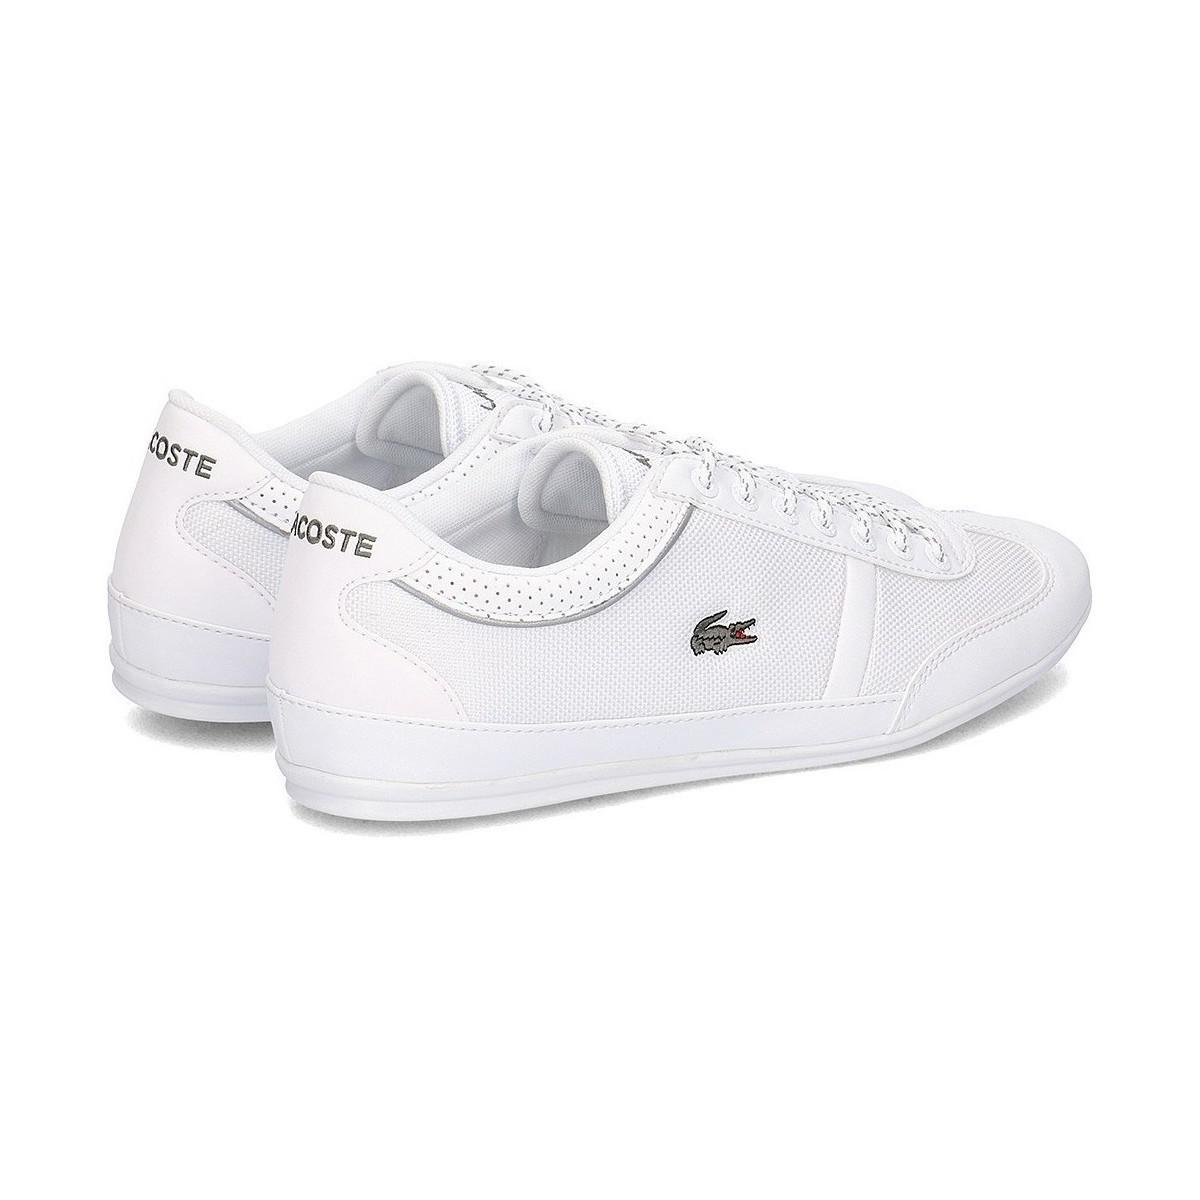 ccaca8665ccbc3 Lacoste Misano Sport 218 1 Cam Whtwht Men s Shoes (trainers) In ...